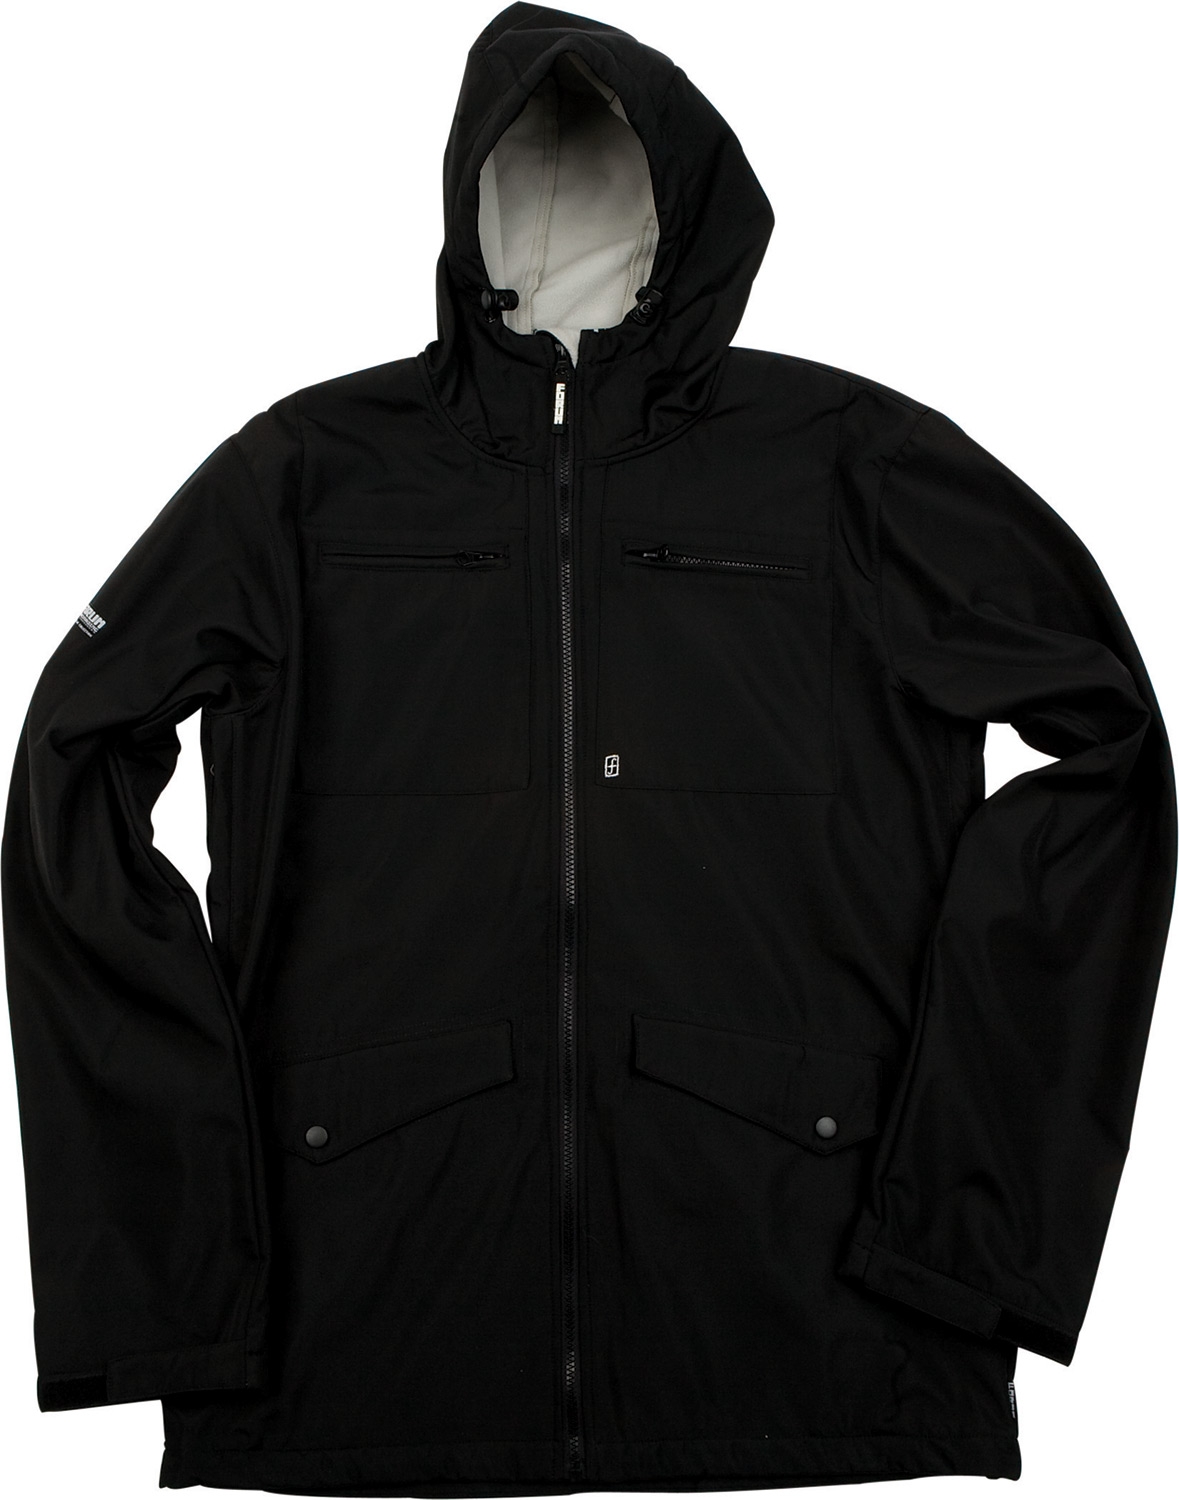 "Snowboard Key Features of the Forum Jackson Softshell Snowboard Jacket: 100% polyester Softshell with DWR Coating 600mm 8"" Vent Opening Multiple pockets for storage Hand warmer pockets Attached fitted hood - $68.95"